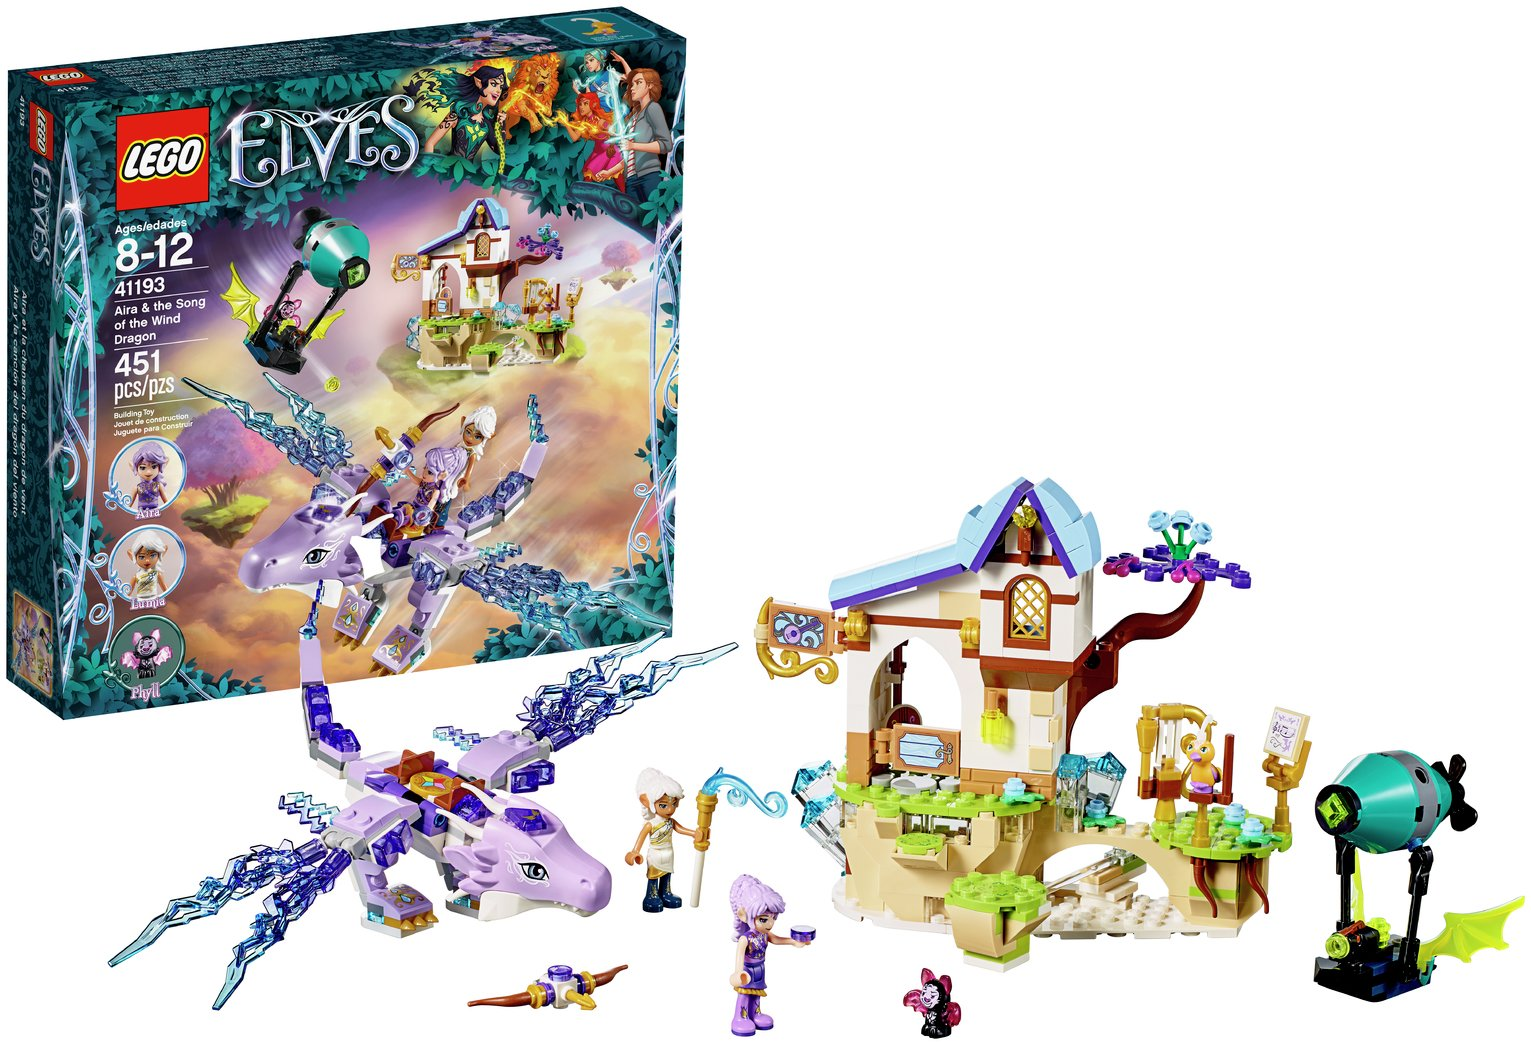 LEGO Elves Aira Song of the Wind Dragon - 41193